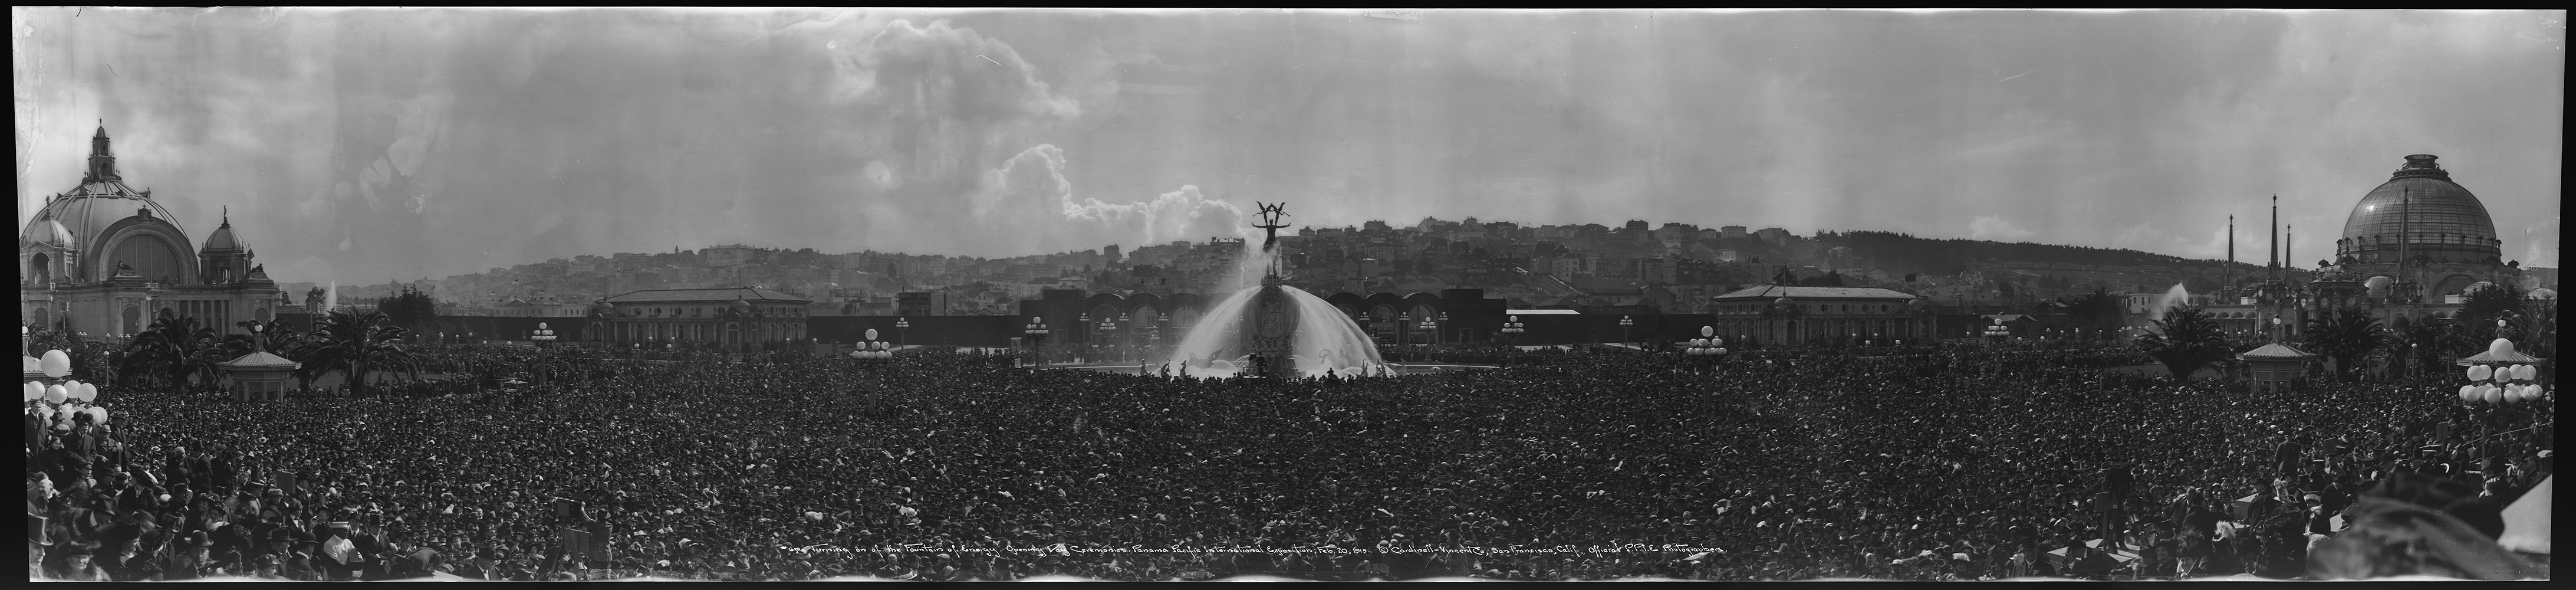 Panoramic photograph: Turning on the Fountain of Energy, Opening Day Panama Pacific International Exposition, February 20, 1915